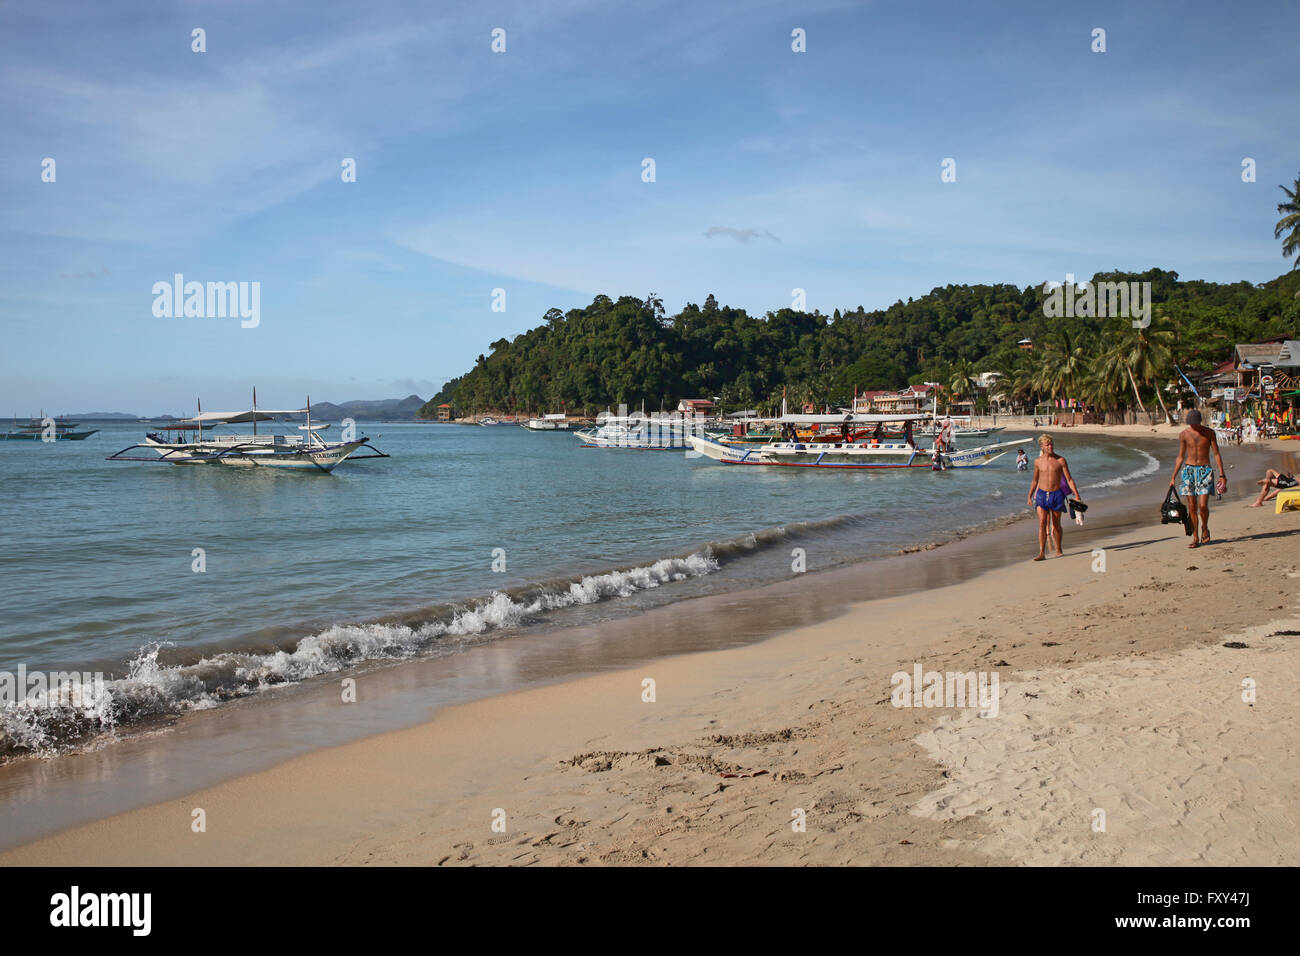 ISLAND HOPPING JUKUNG BOATS EL NIDO PALAWAN PHILIPPINES 25 April 2015 - Stock Image